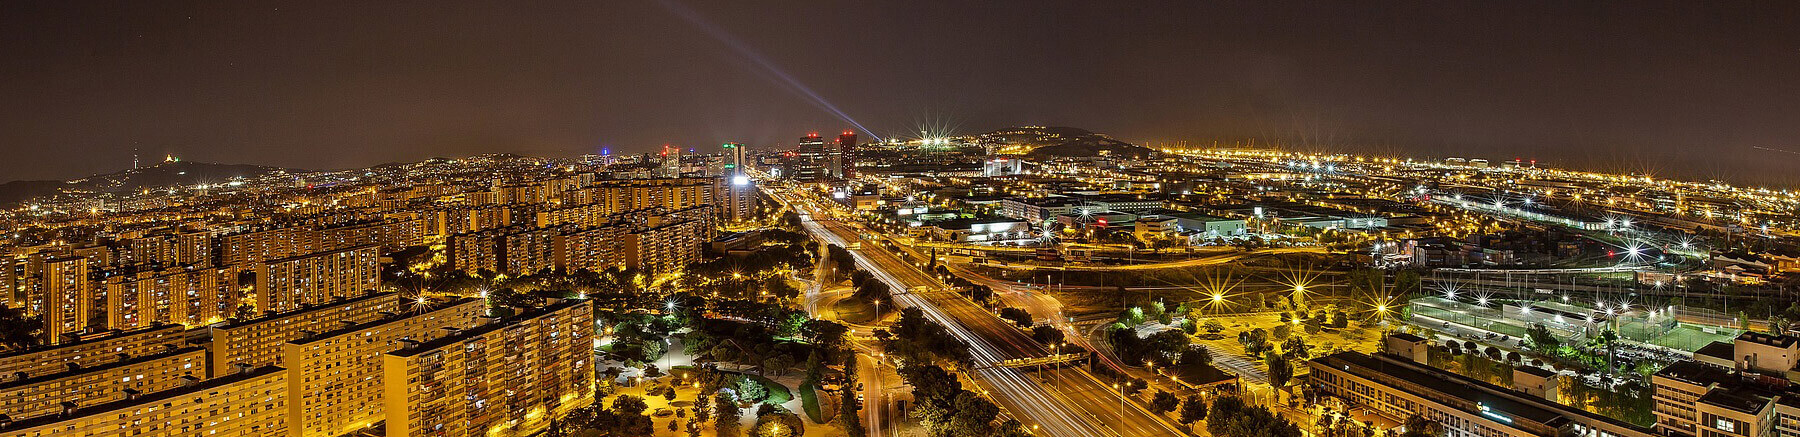 Skyline of Barcelona by night with a lot of lights, residential buildings and highways